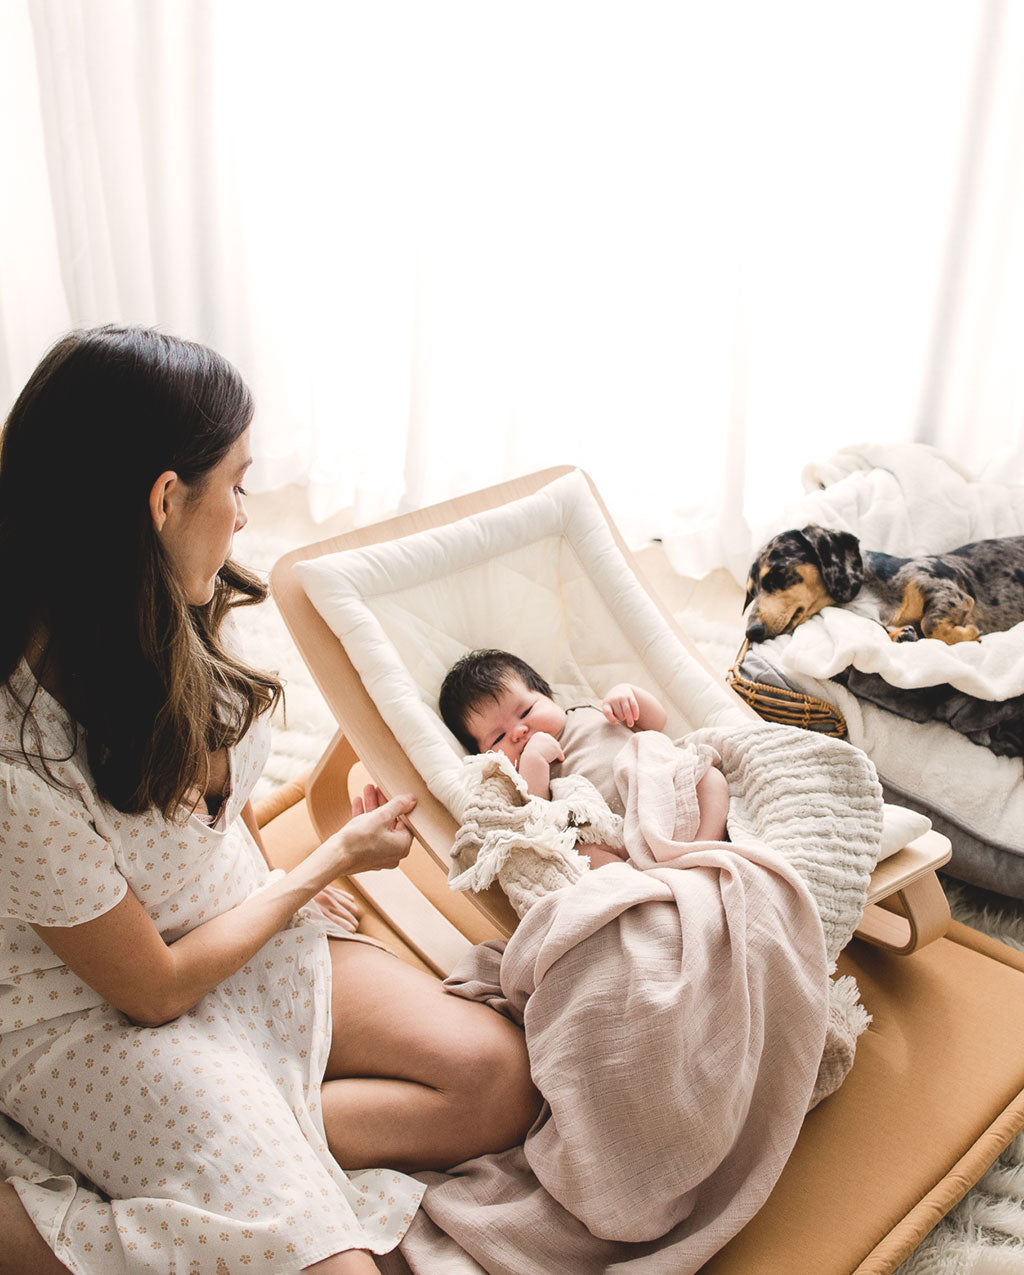 Mother with her newborn baby in a Charlie Crane Levo Rocker on a Tami Mat with a dog sleeping in the background